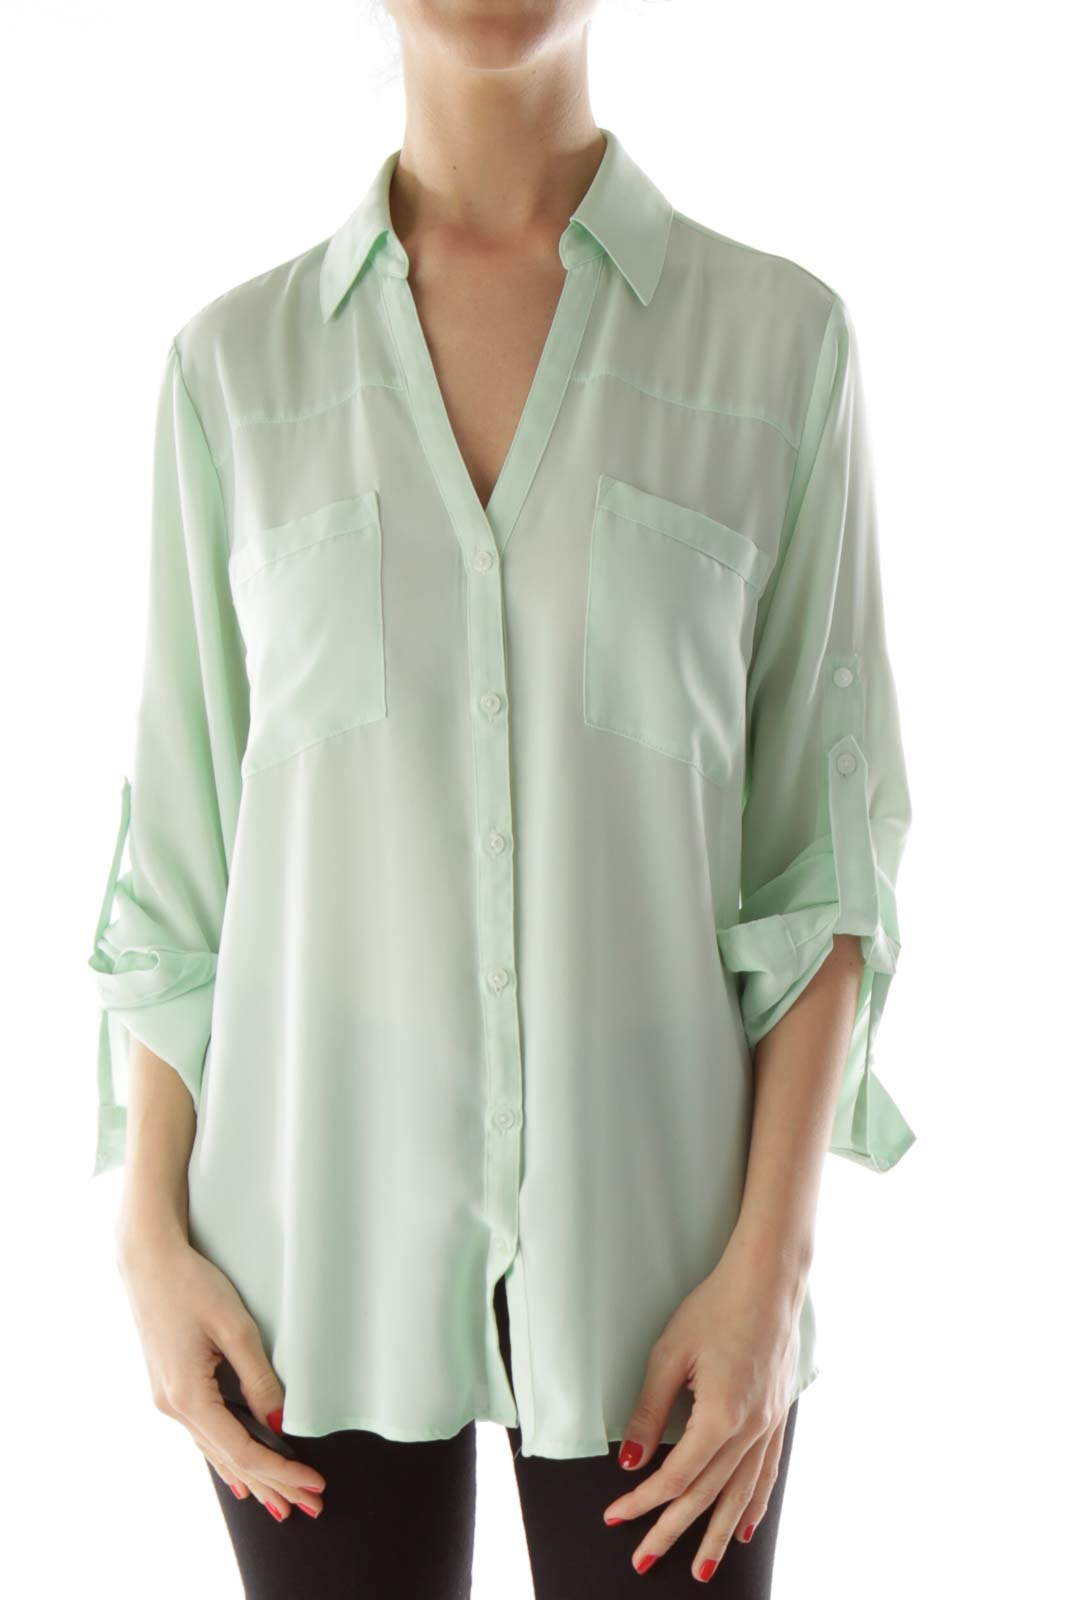 Green Pocketed Buttoned Up Blouse